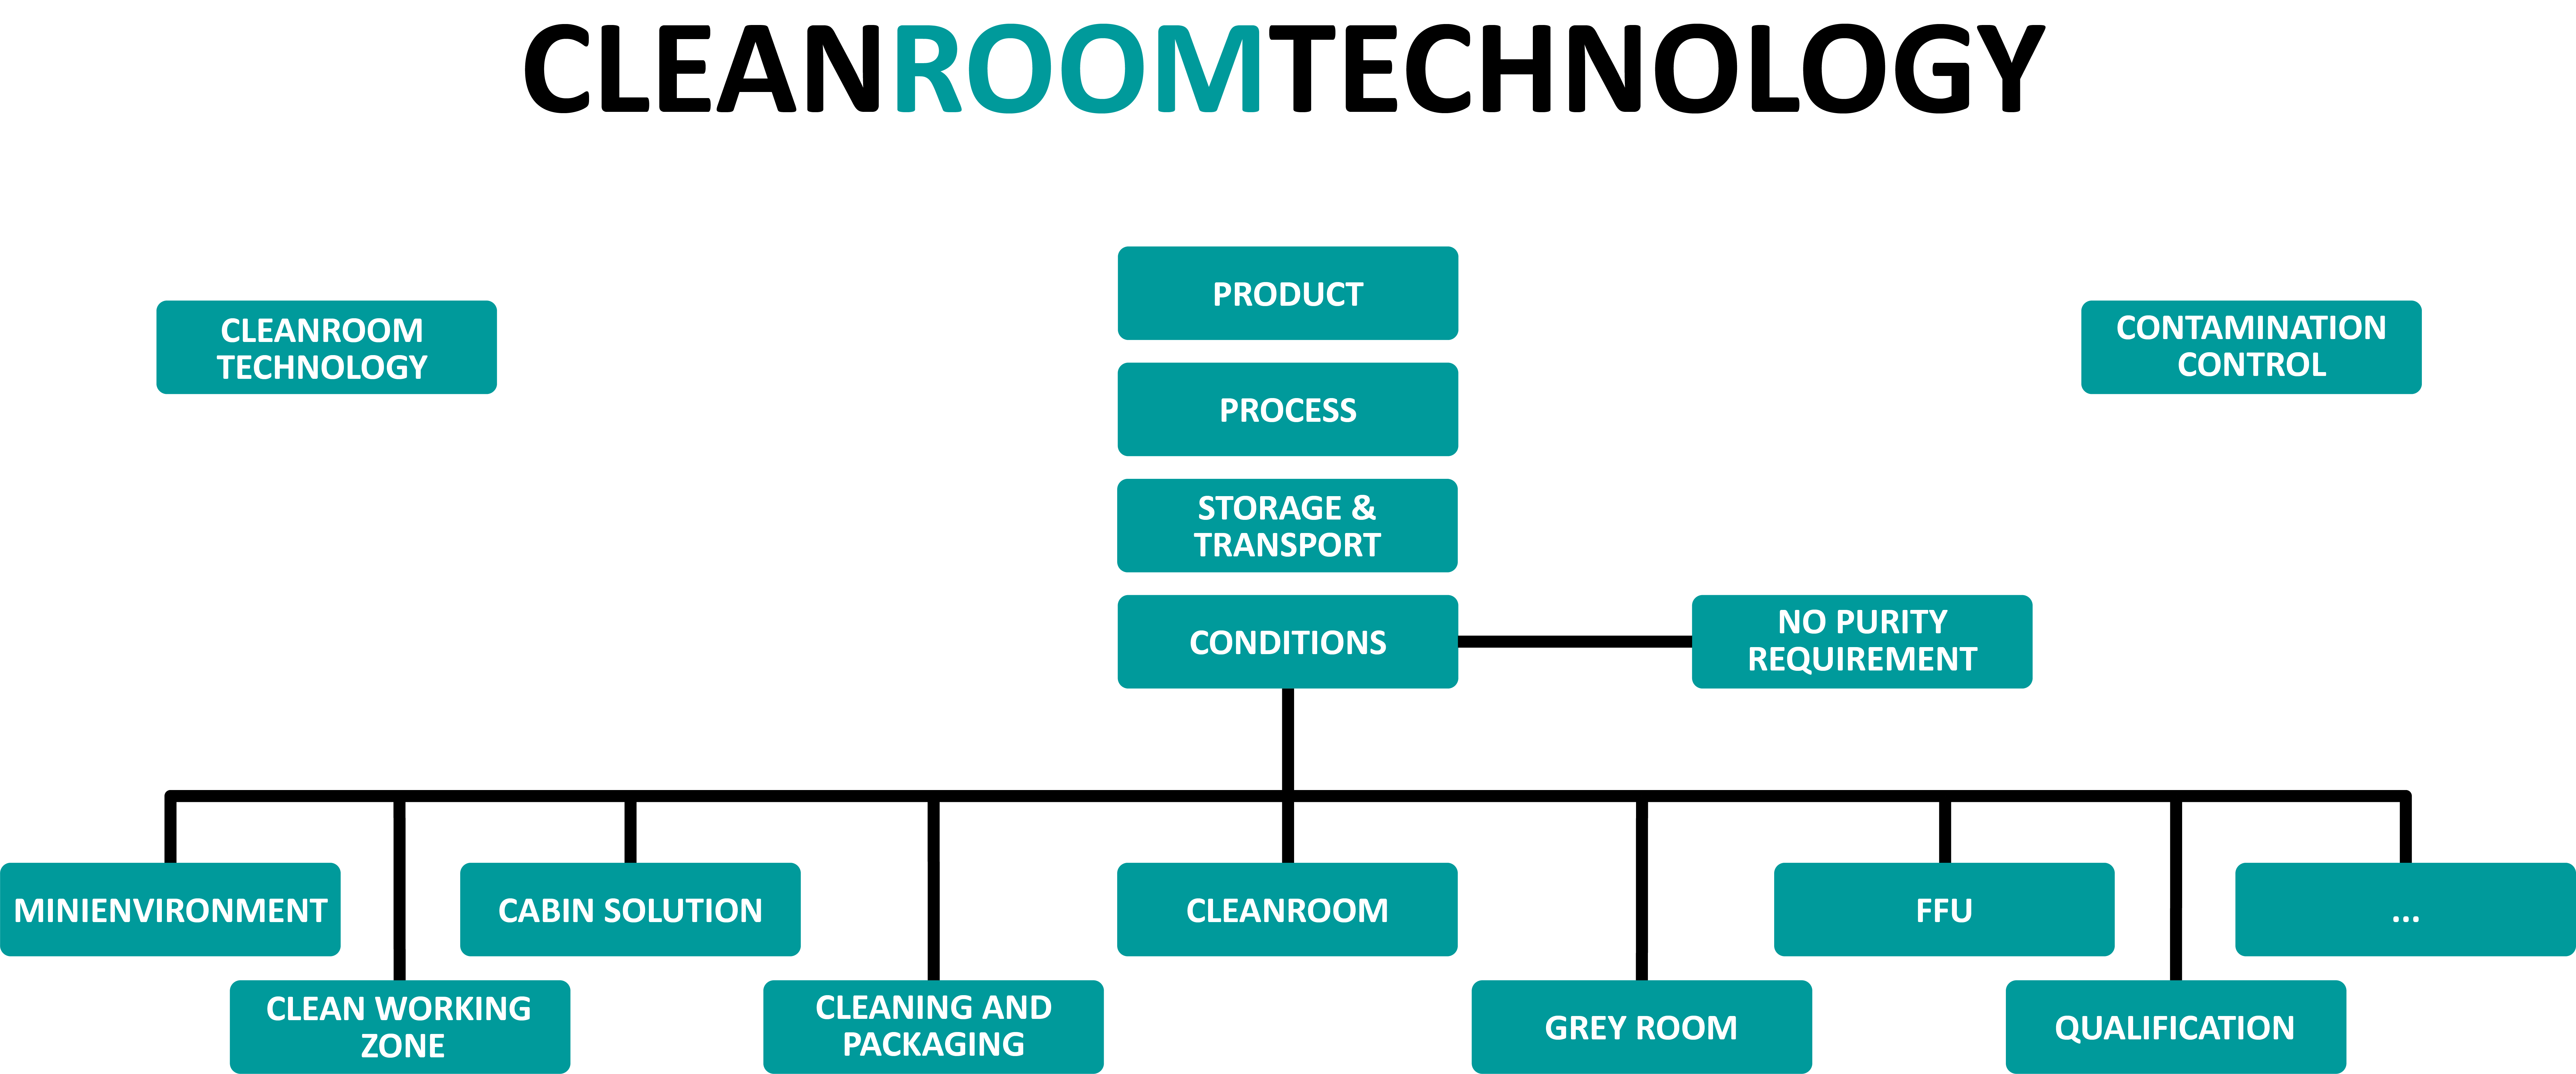 cleanroom technology overview